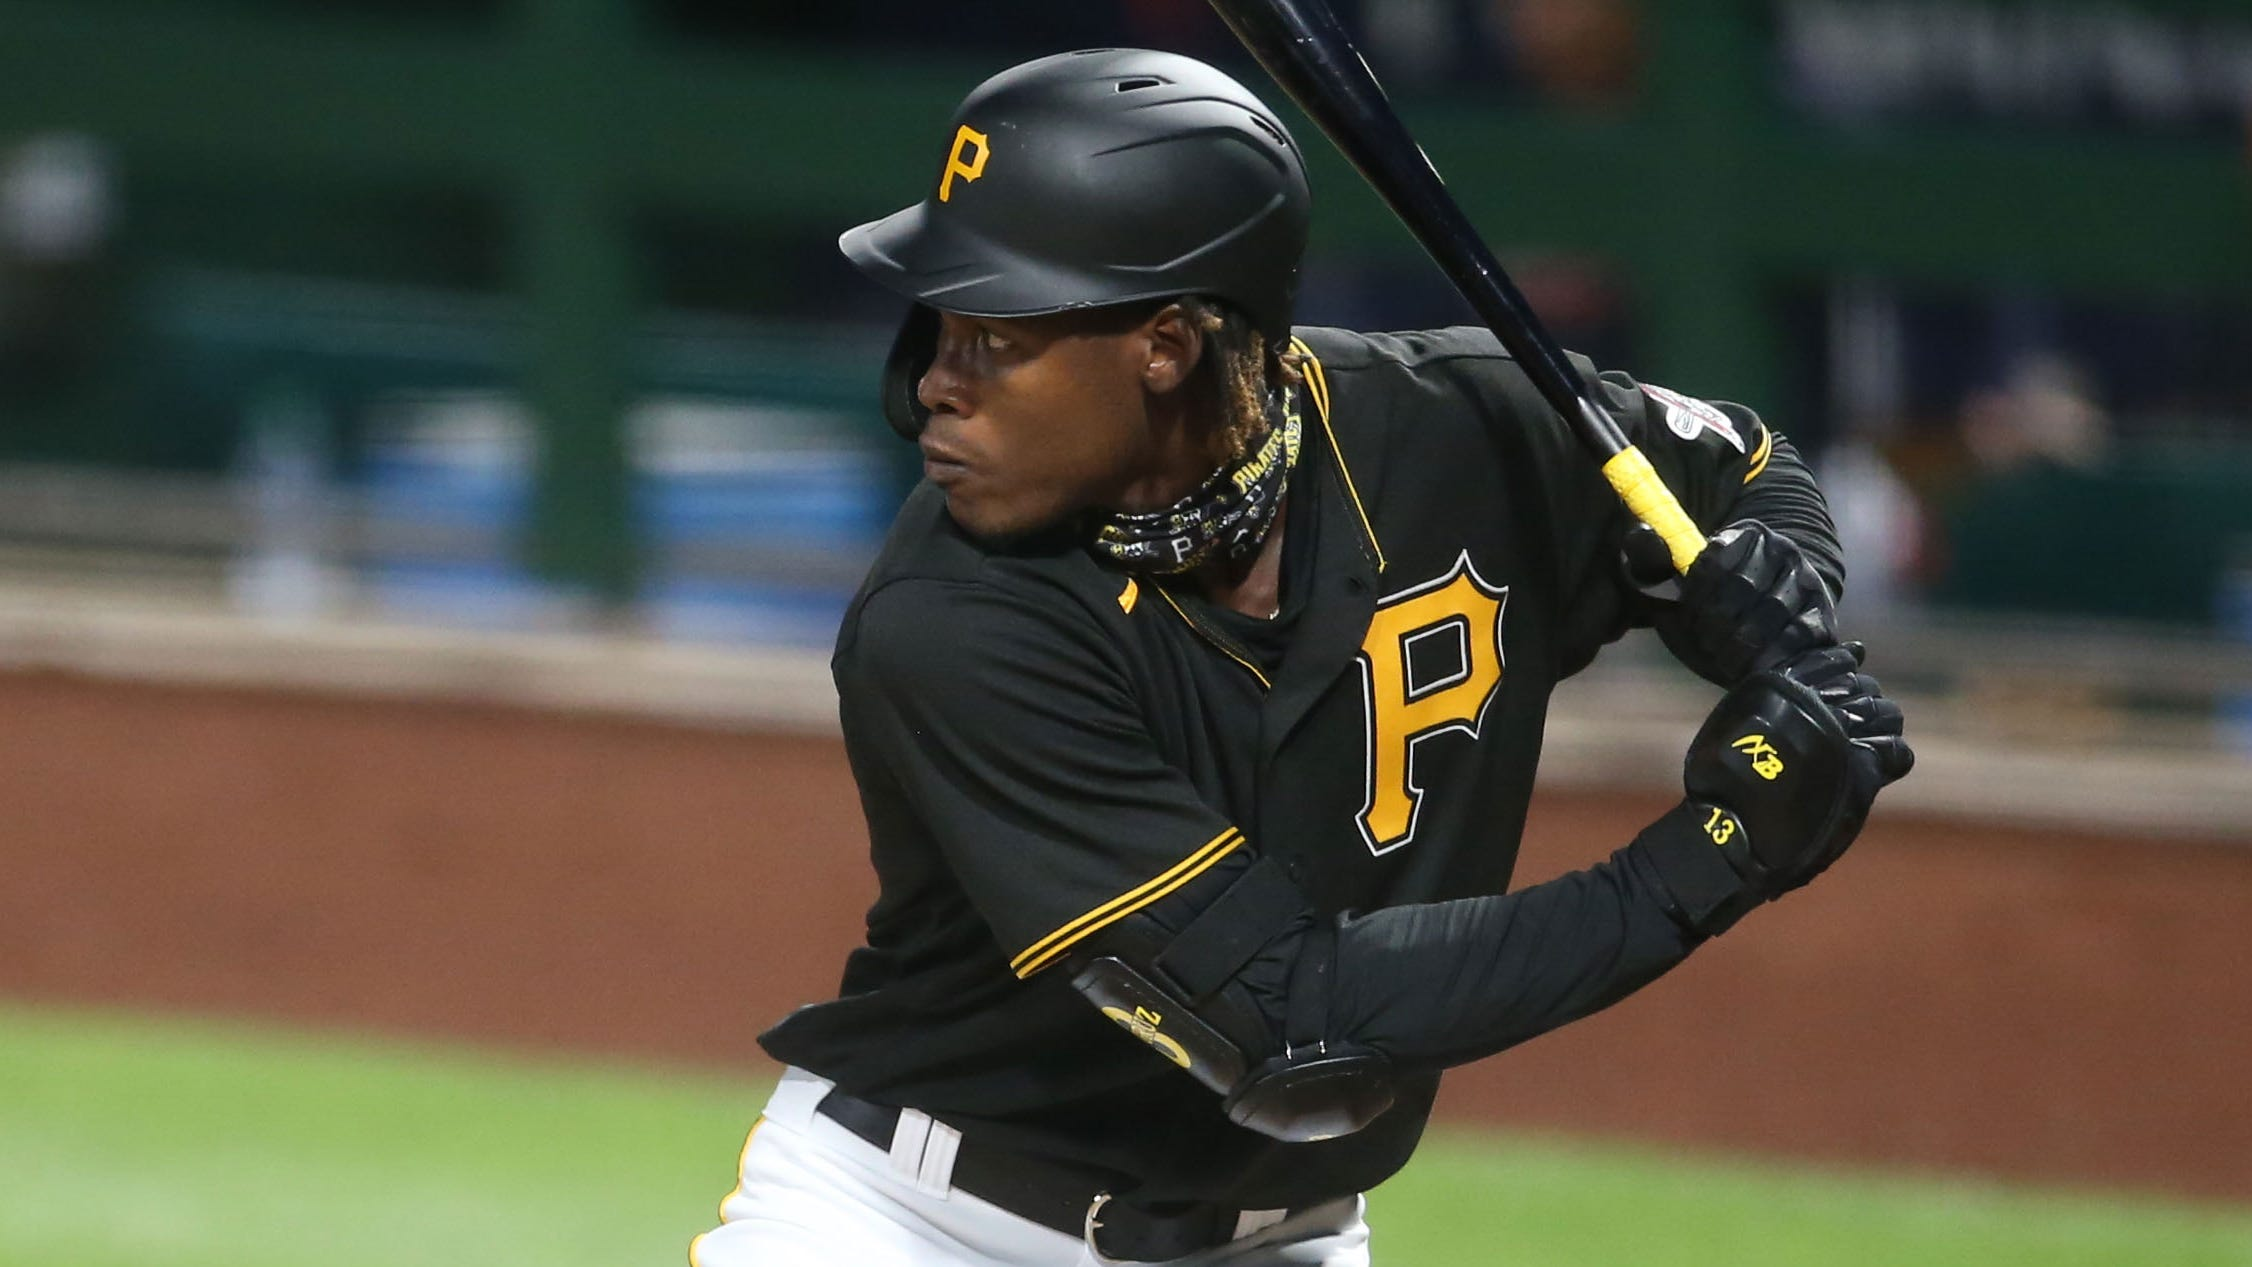 Pirates prospect Oneil Cruz under influence of alcohol in crash that killed three in Dominican Republic, per reports